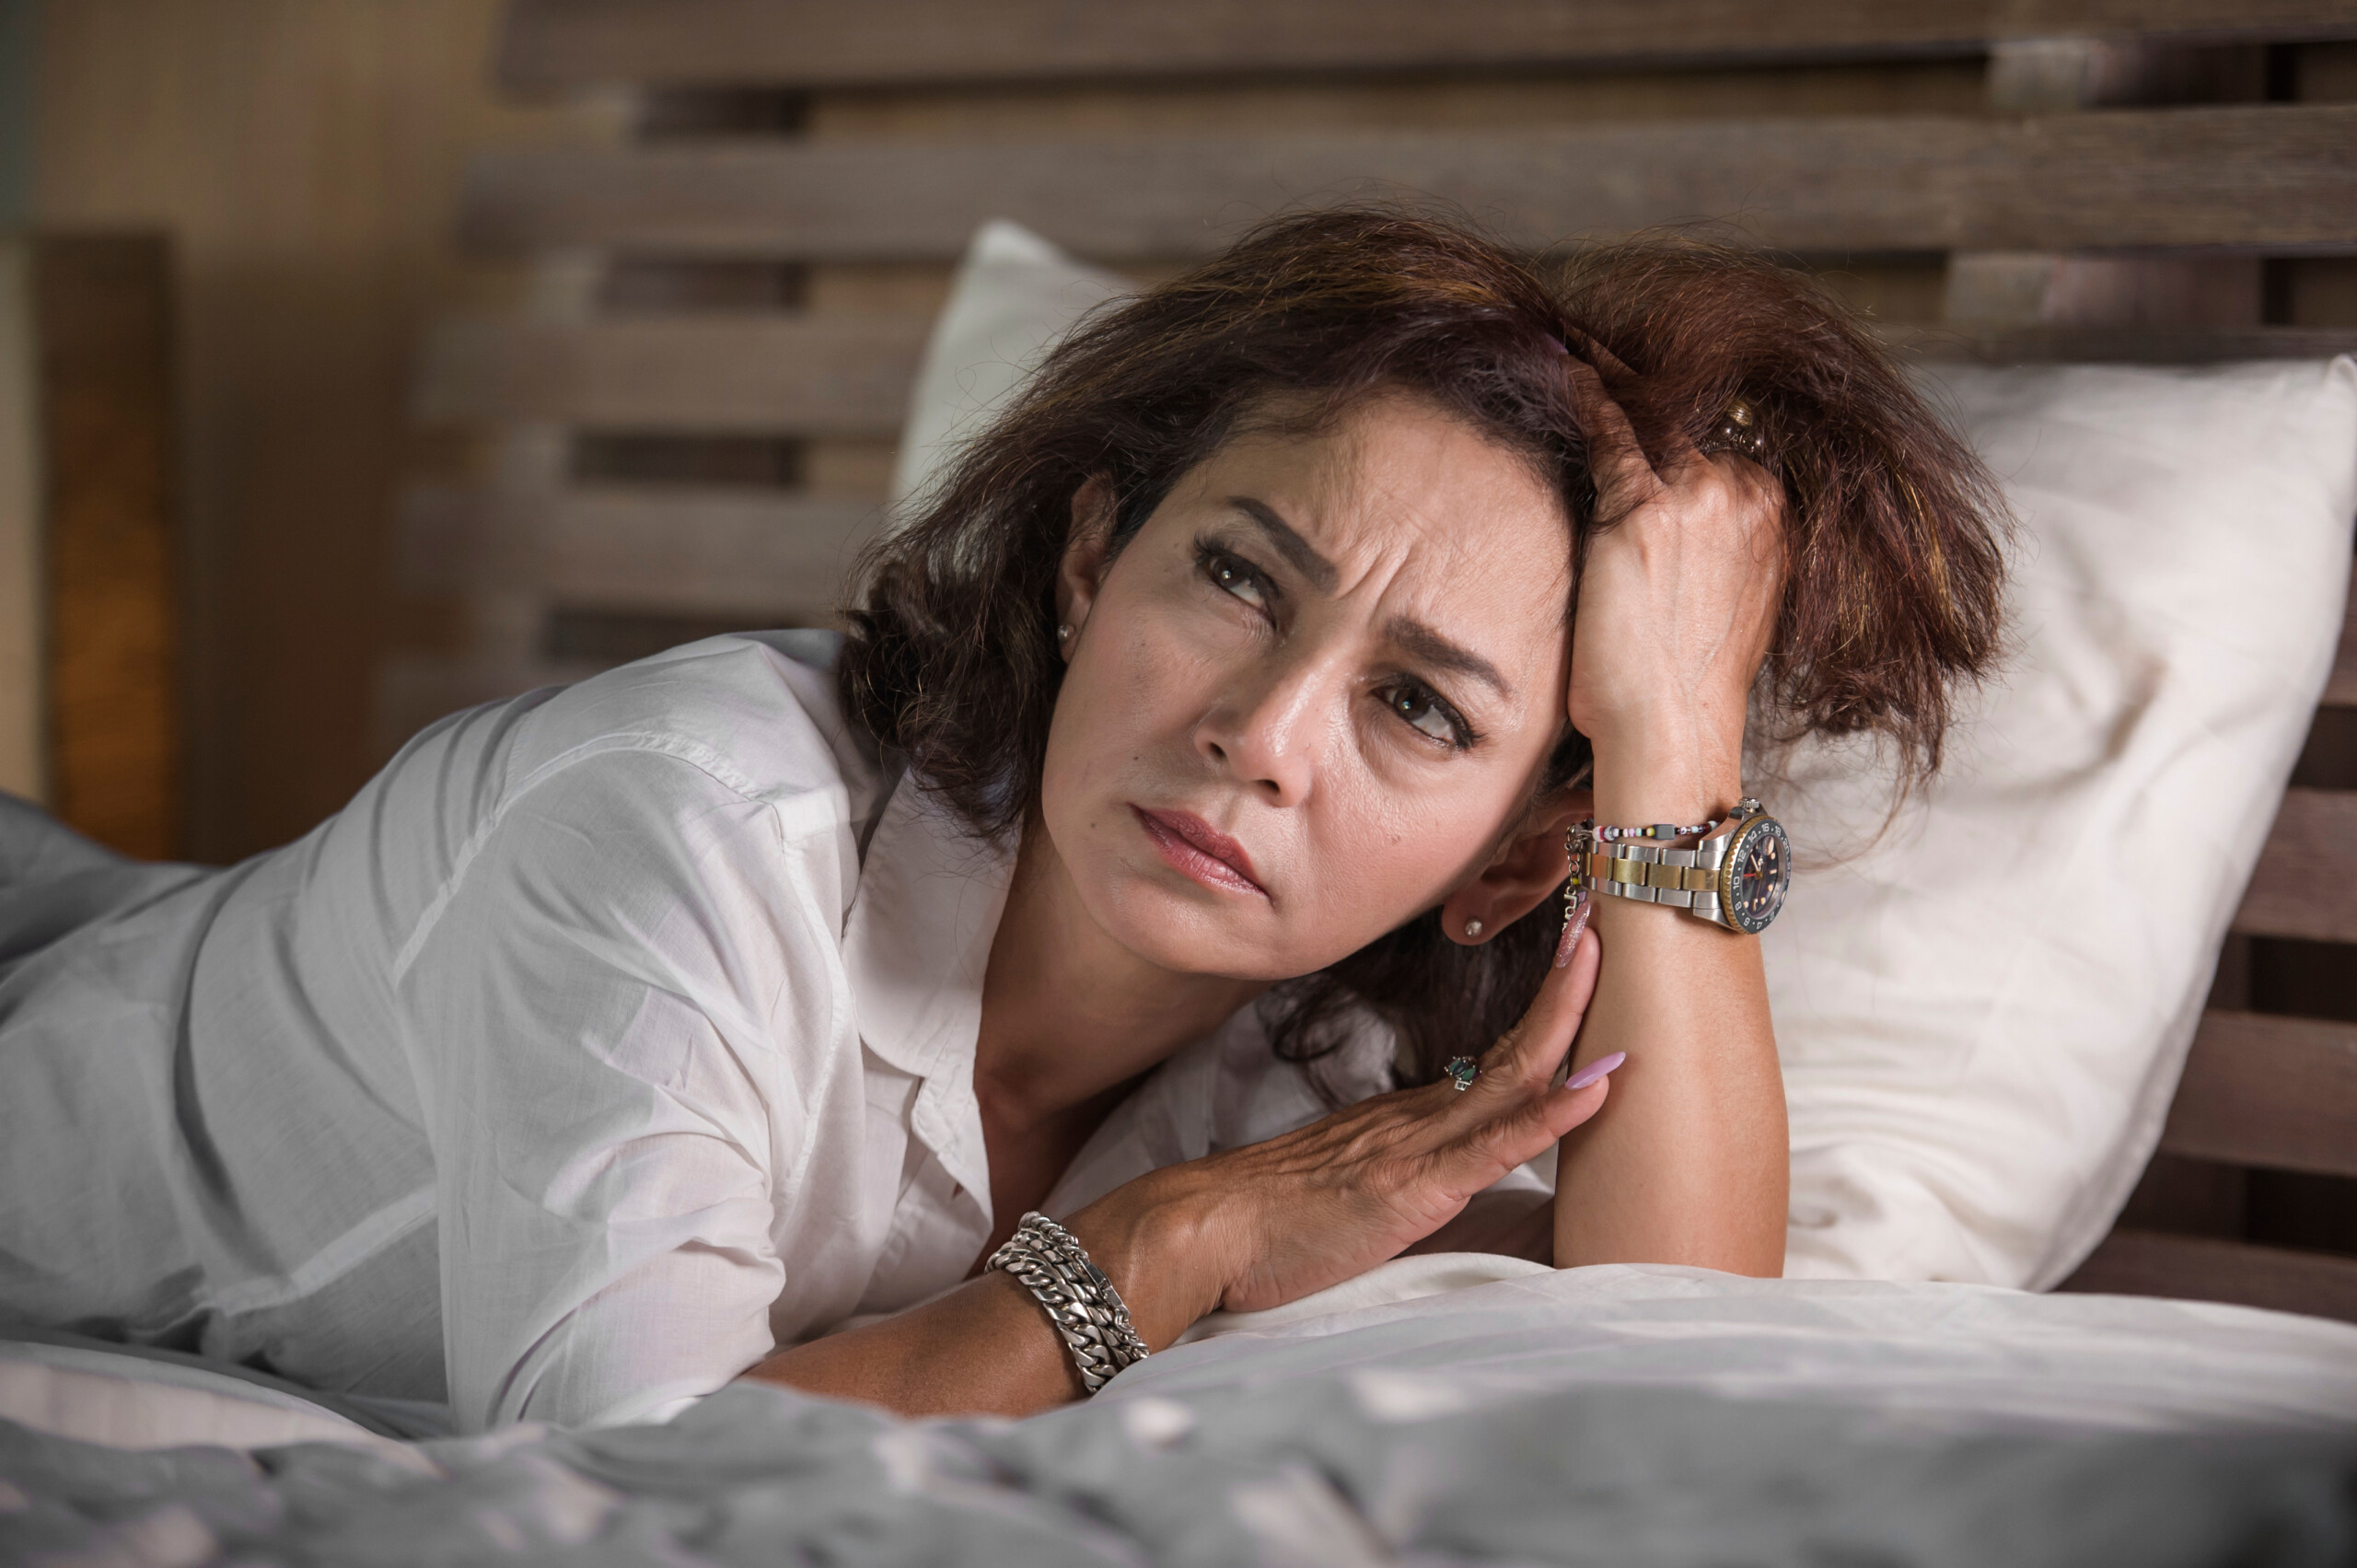 Cervical Mucus Production Postmenopause after Being Dry